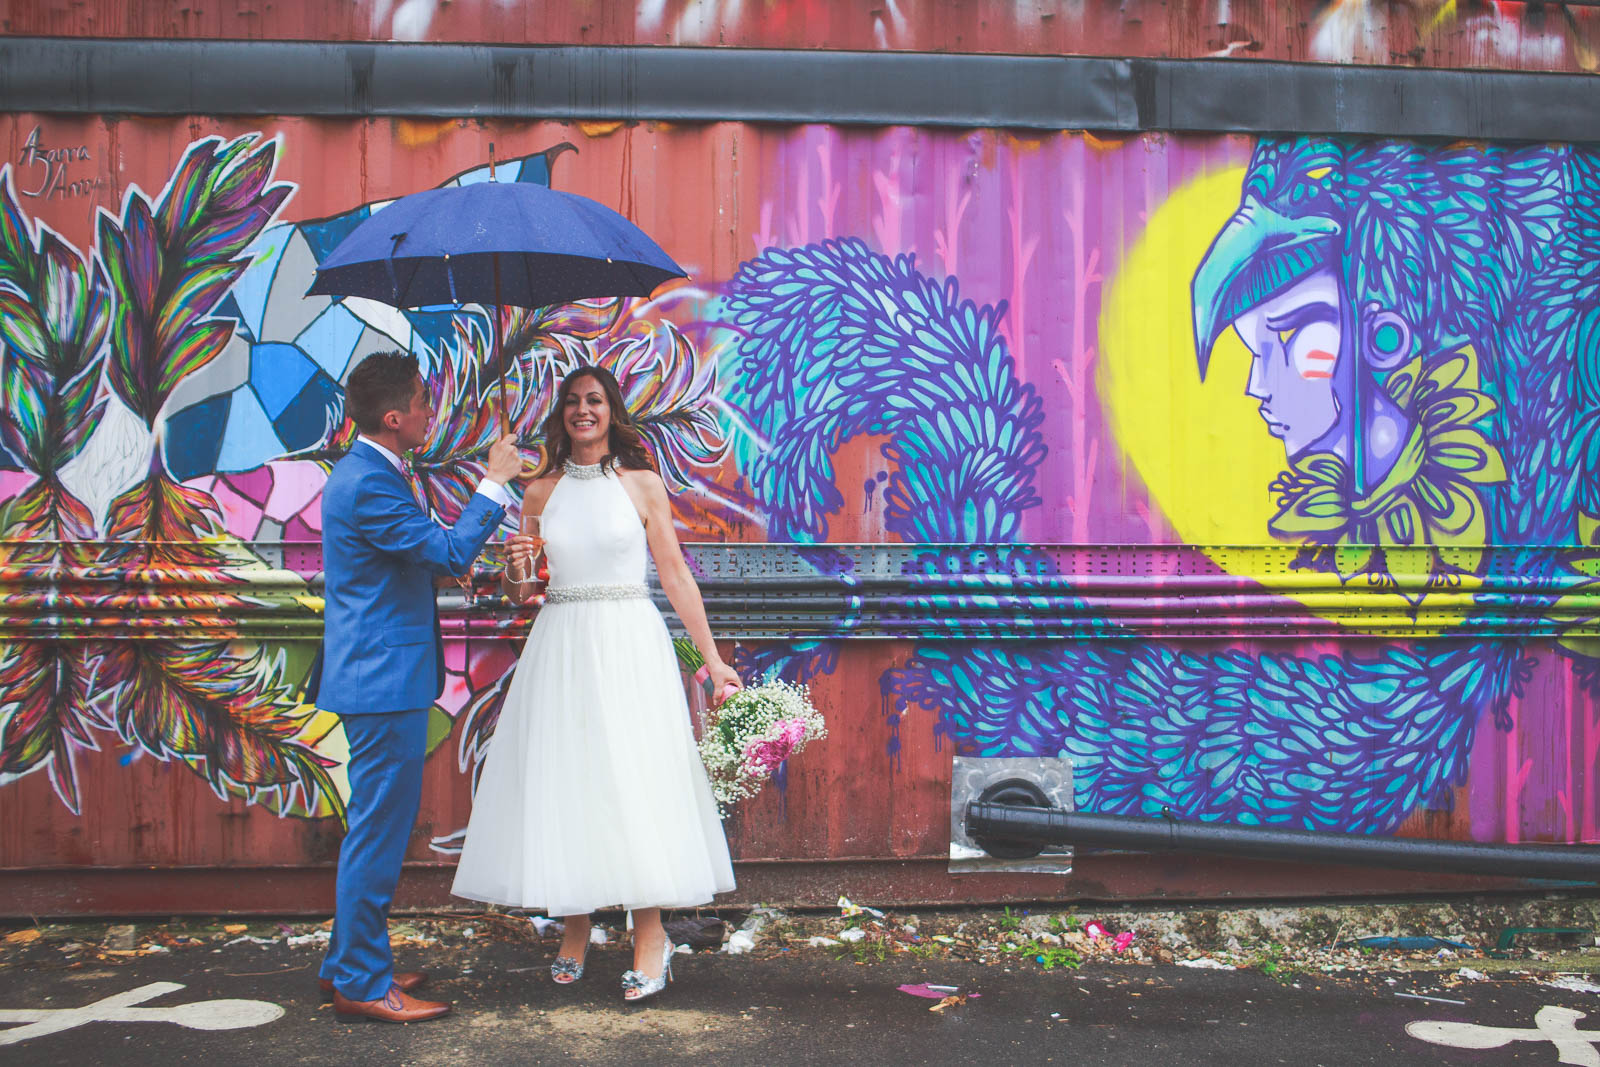 Quirky Venue, Non-traditional wedding planner, London Wedding coordination, Bespoke weddings, Brixton East 1871 Wedding, informal, Stylish wedding, Warehouse wedding, Dry hire venue